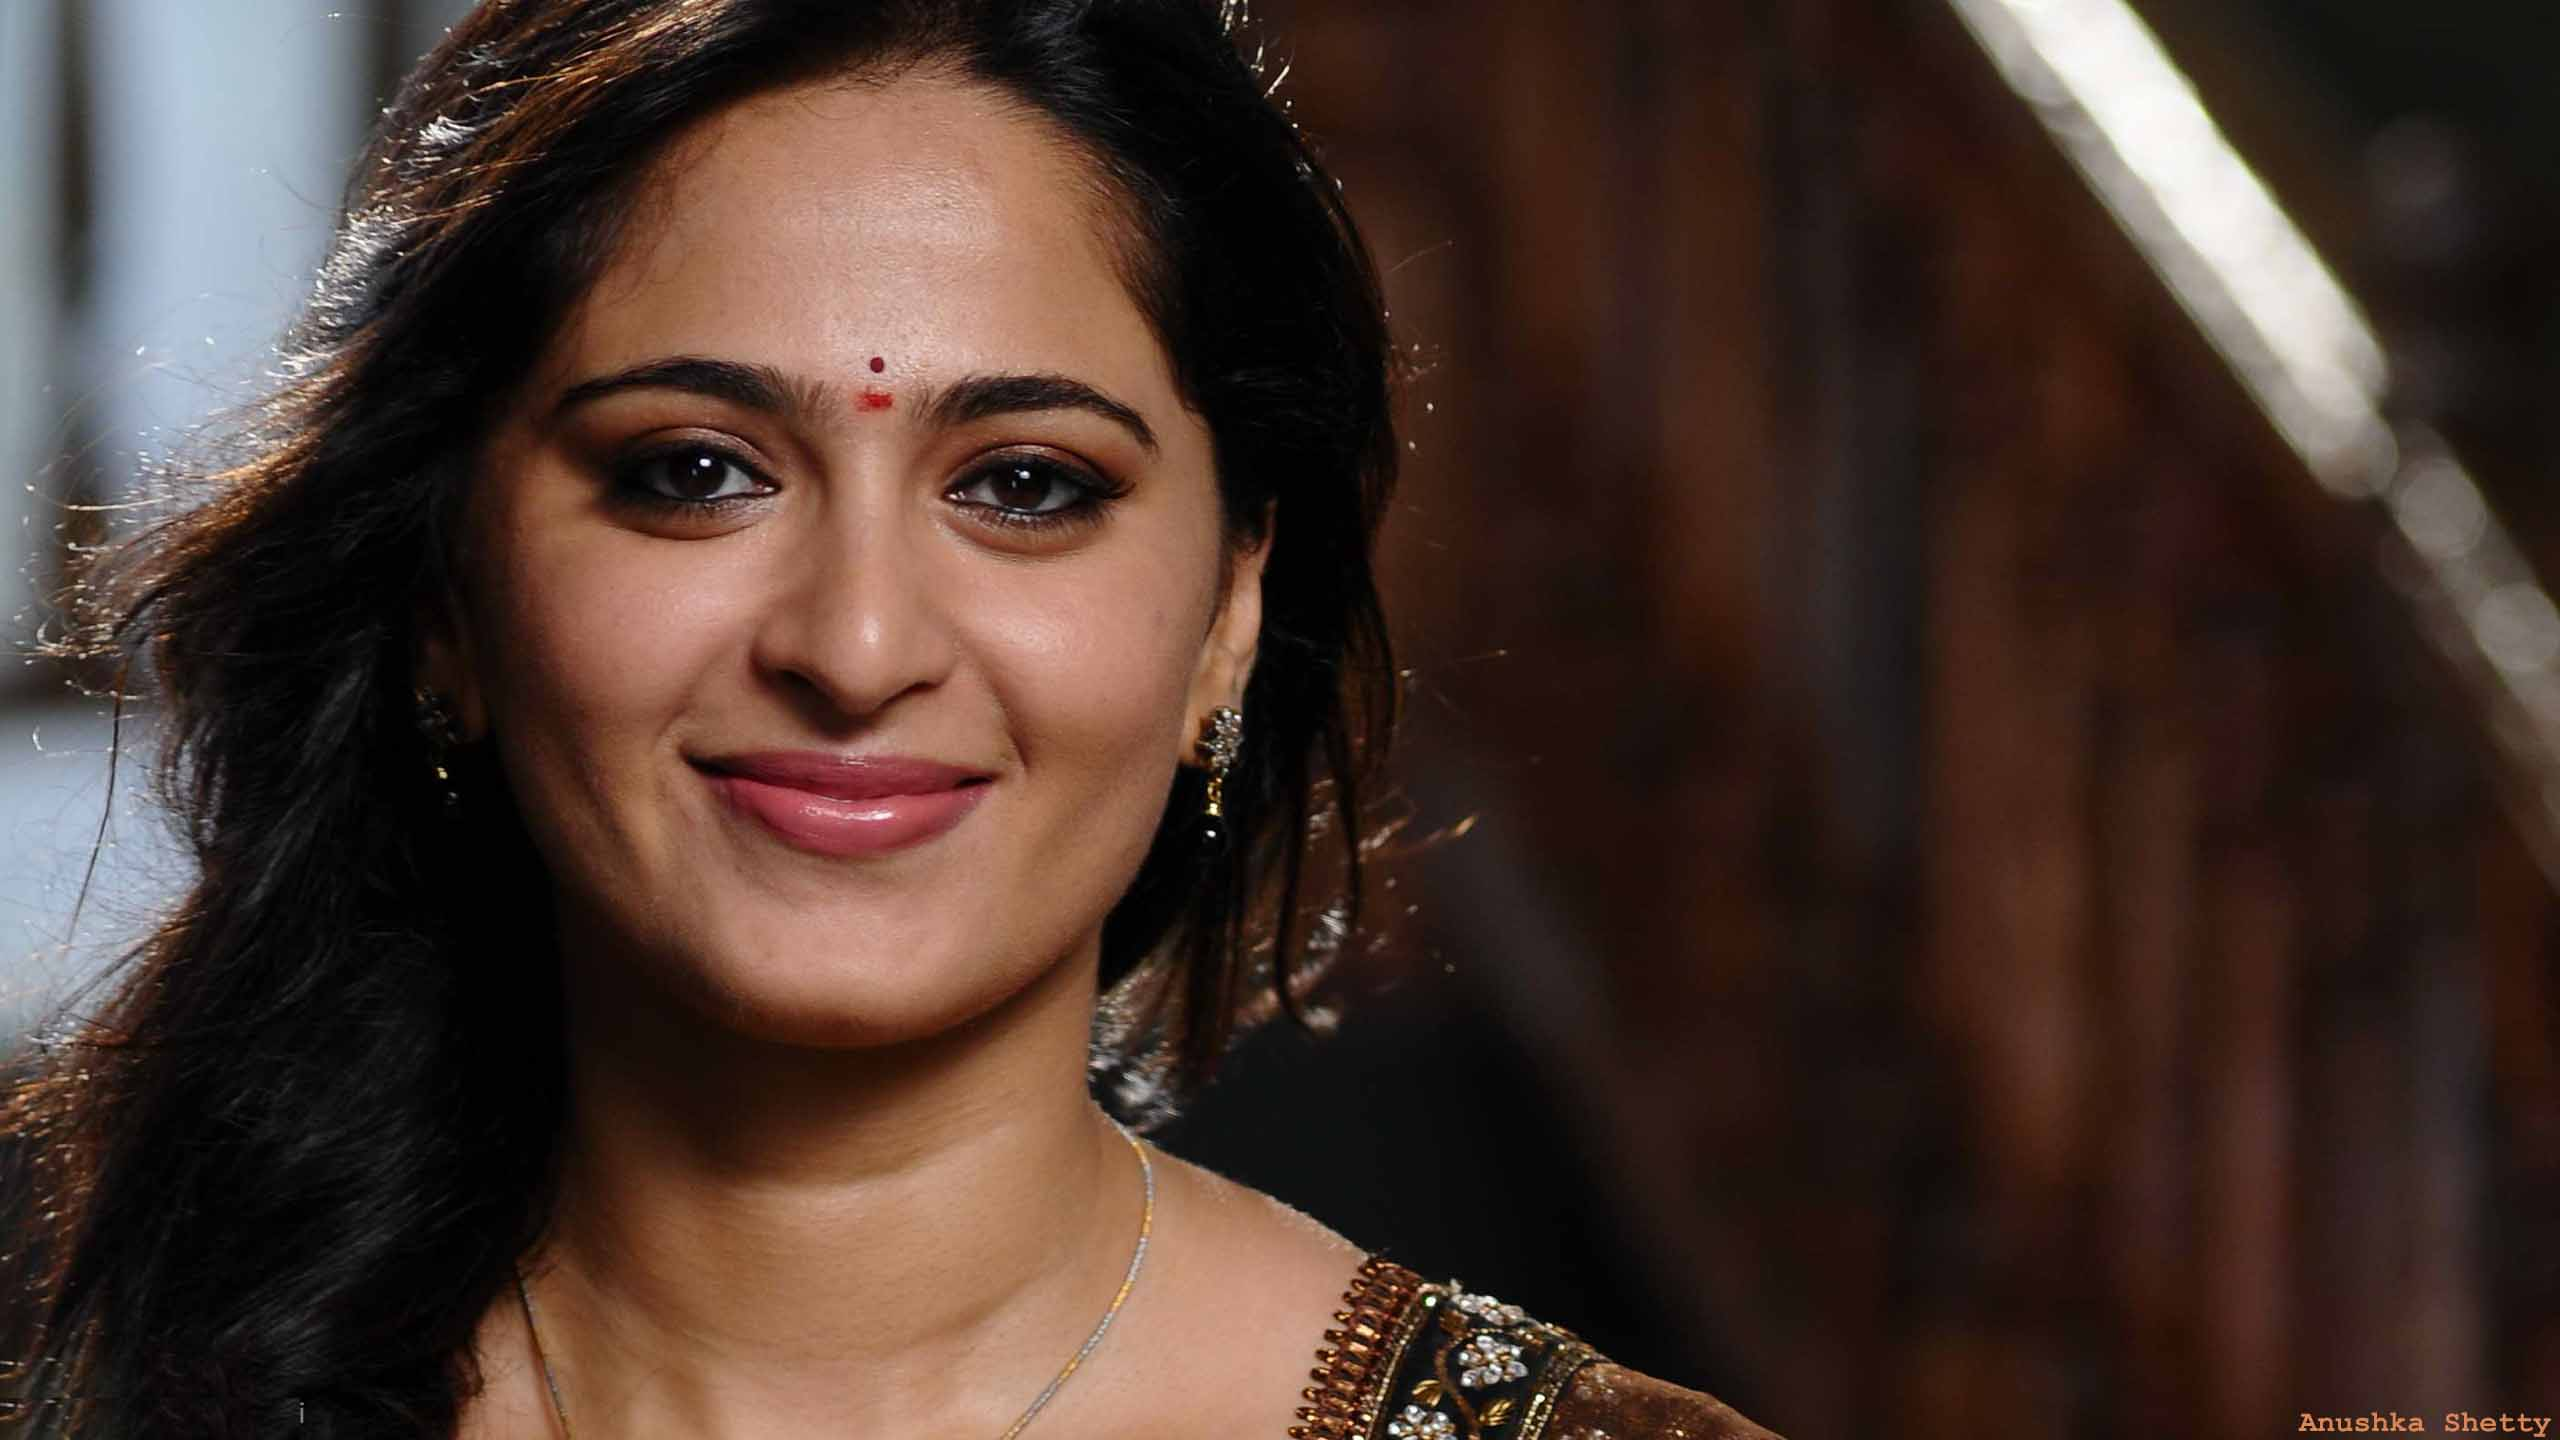 Anushka Shetty Hot Photos, HD Images with Biography 2560x1440